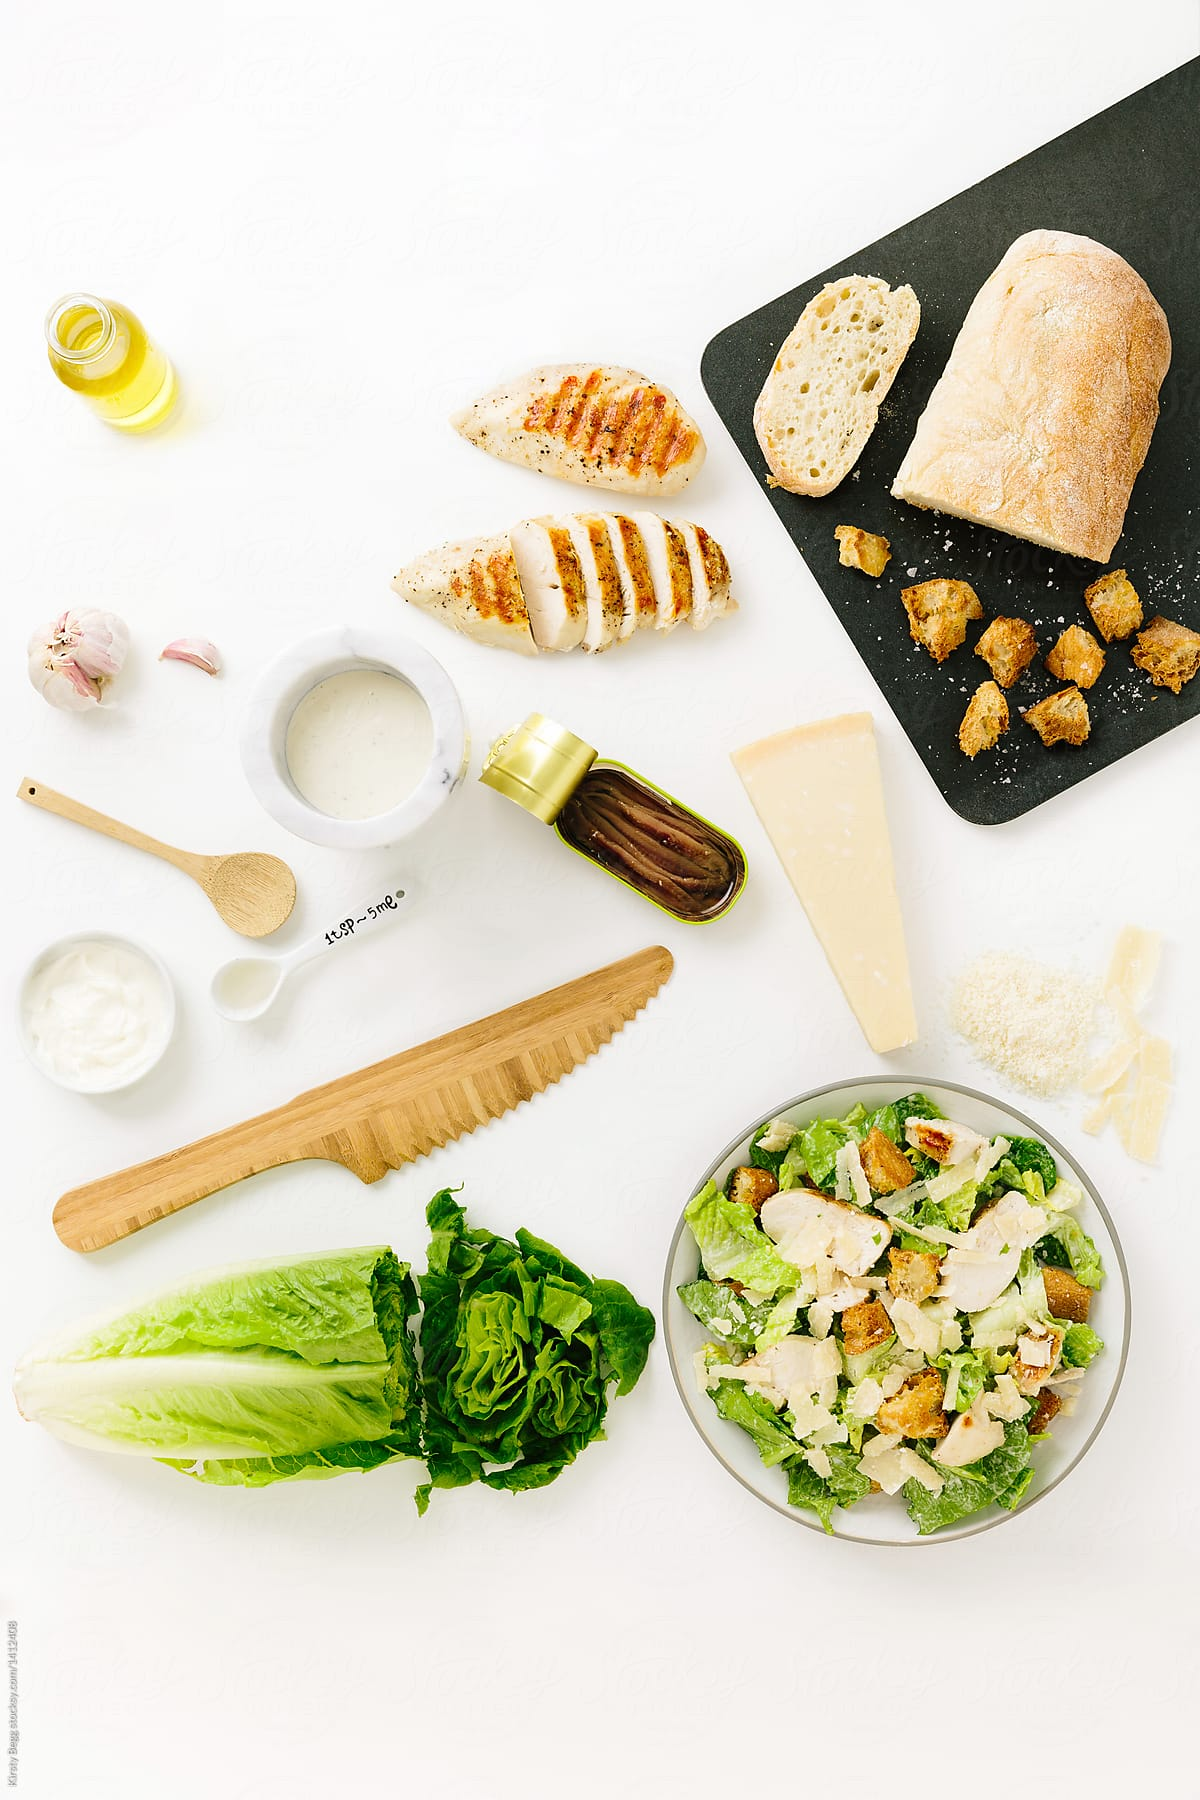 recipe layout for chicken caesar salad with ingredients stocksy united